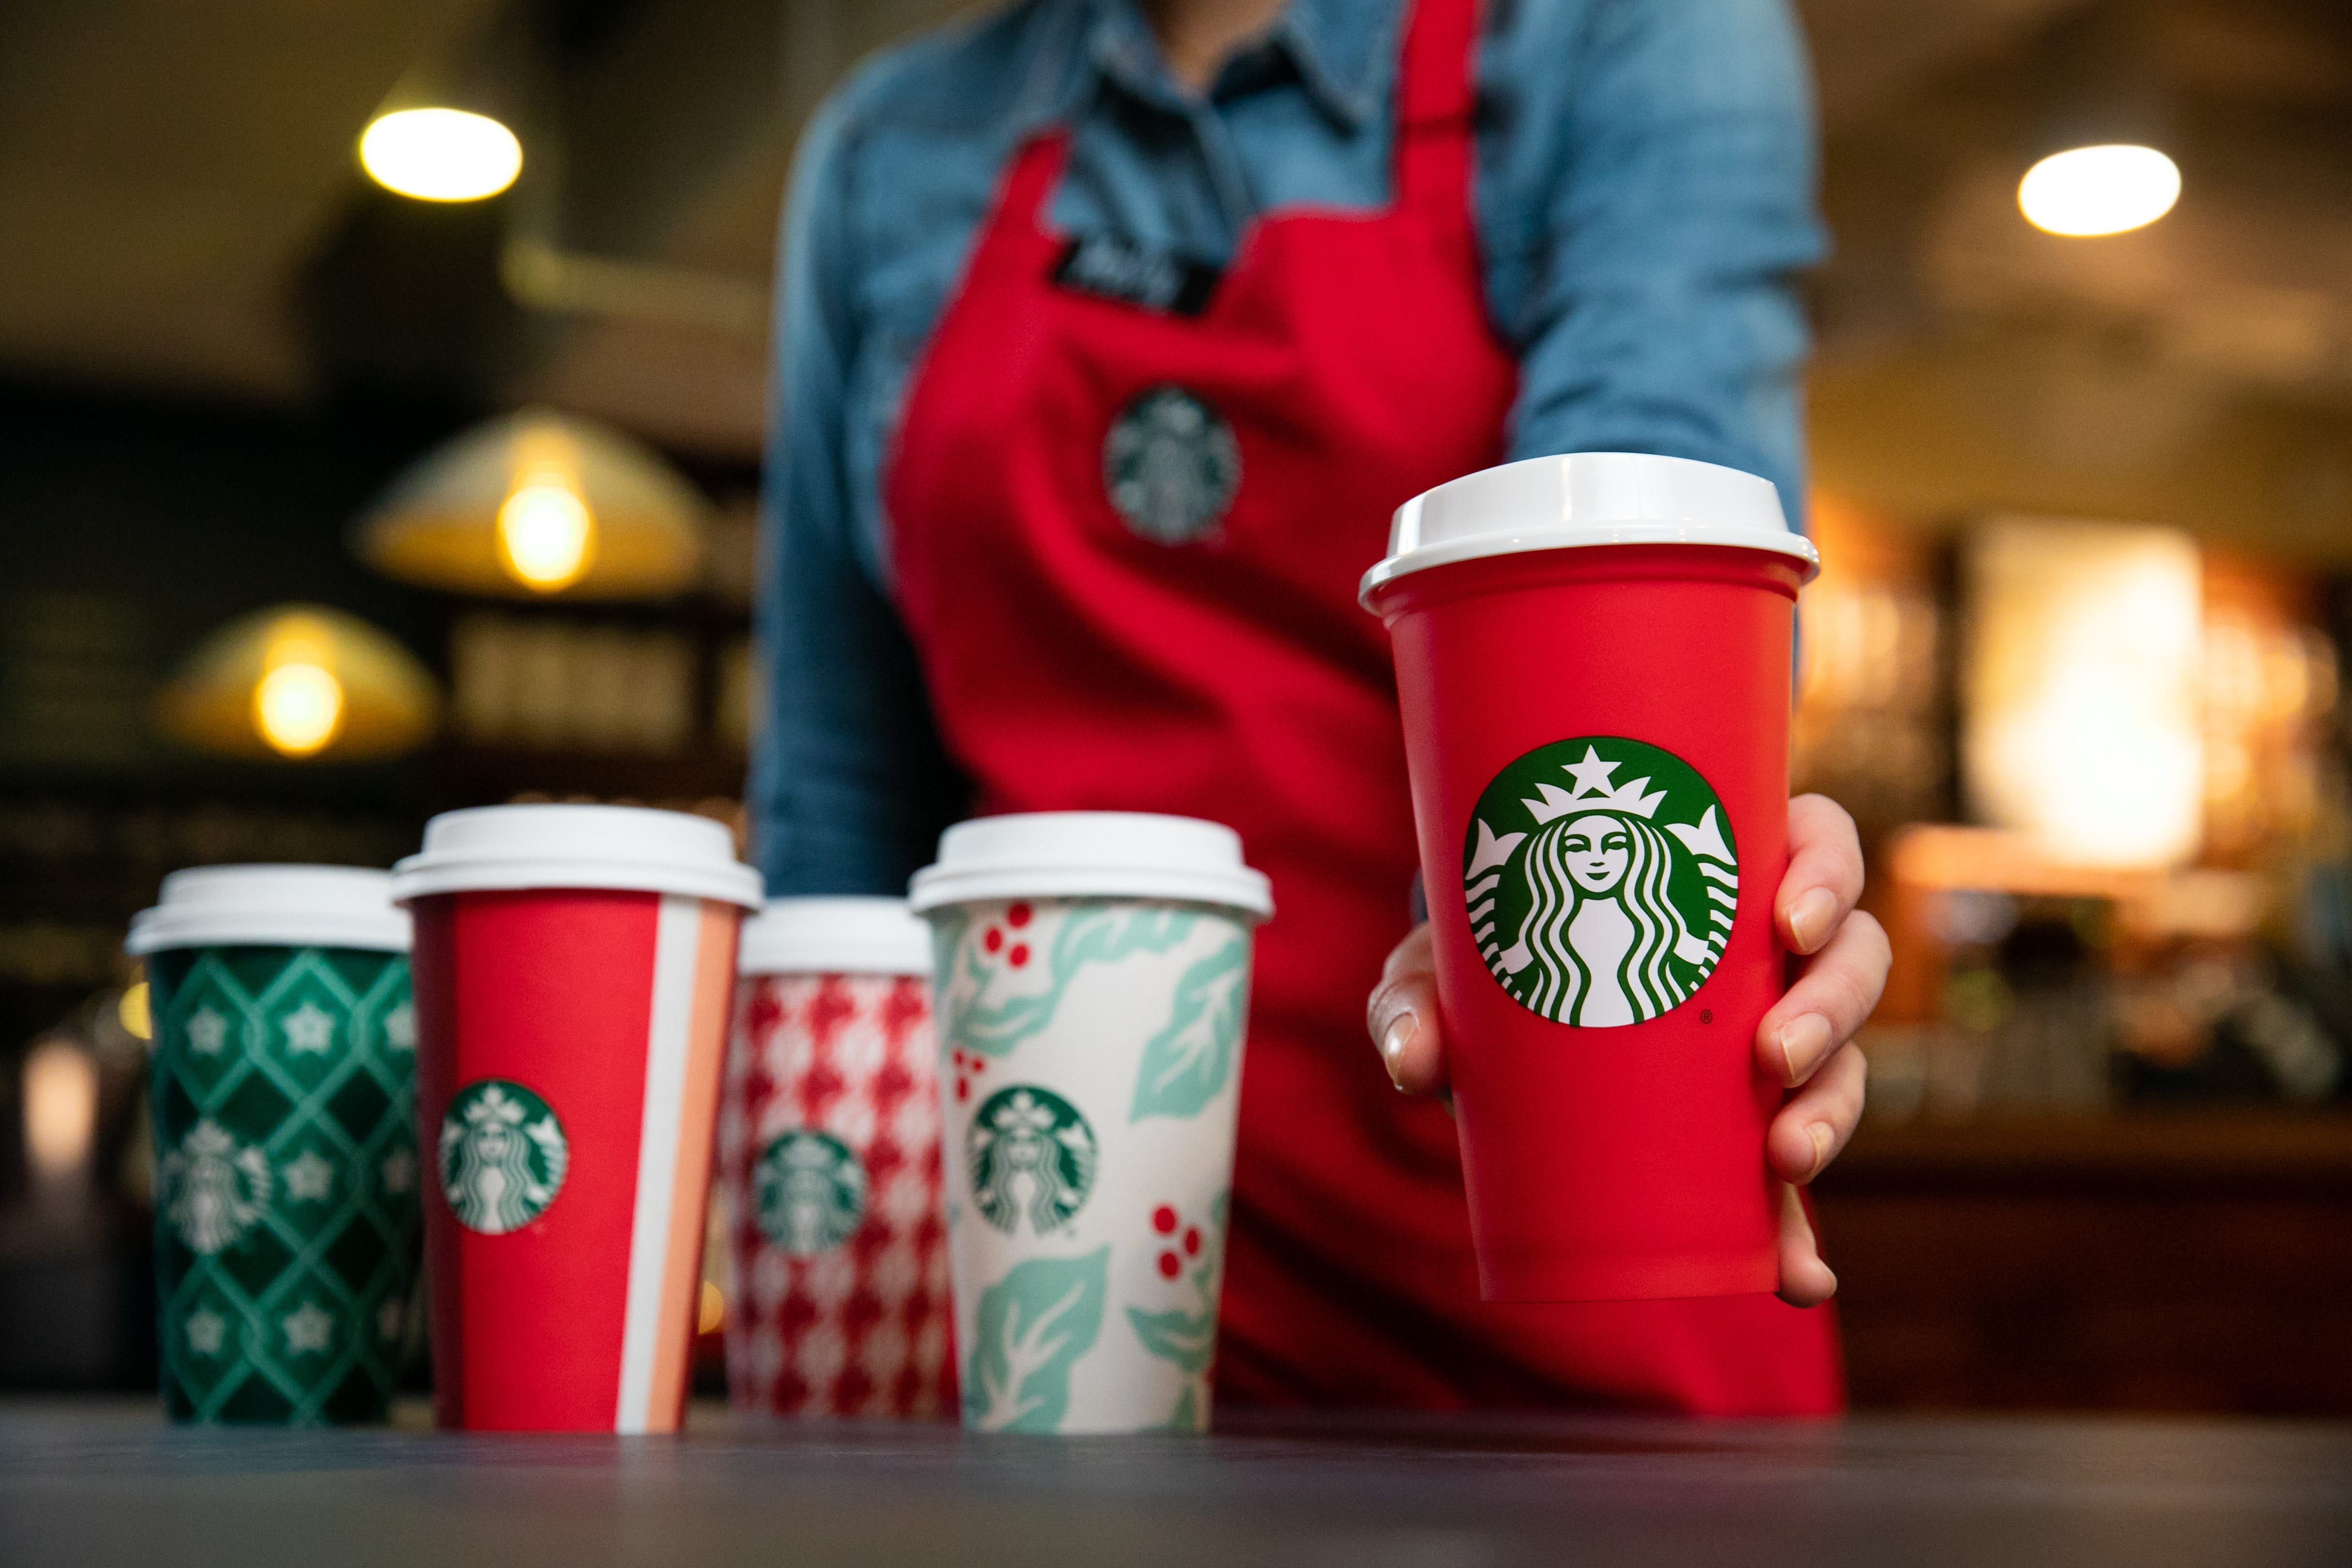 Starbucks Free Reusable Cups Today: Holiday 2018 Deal